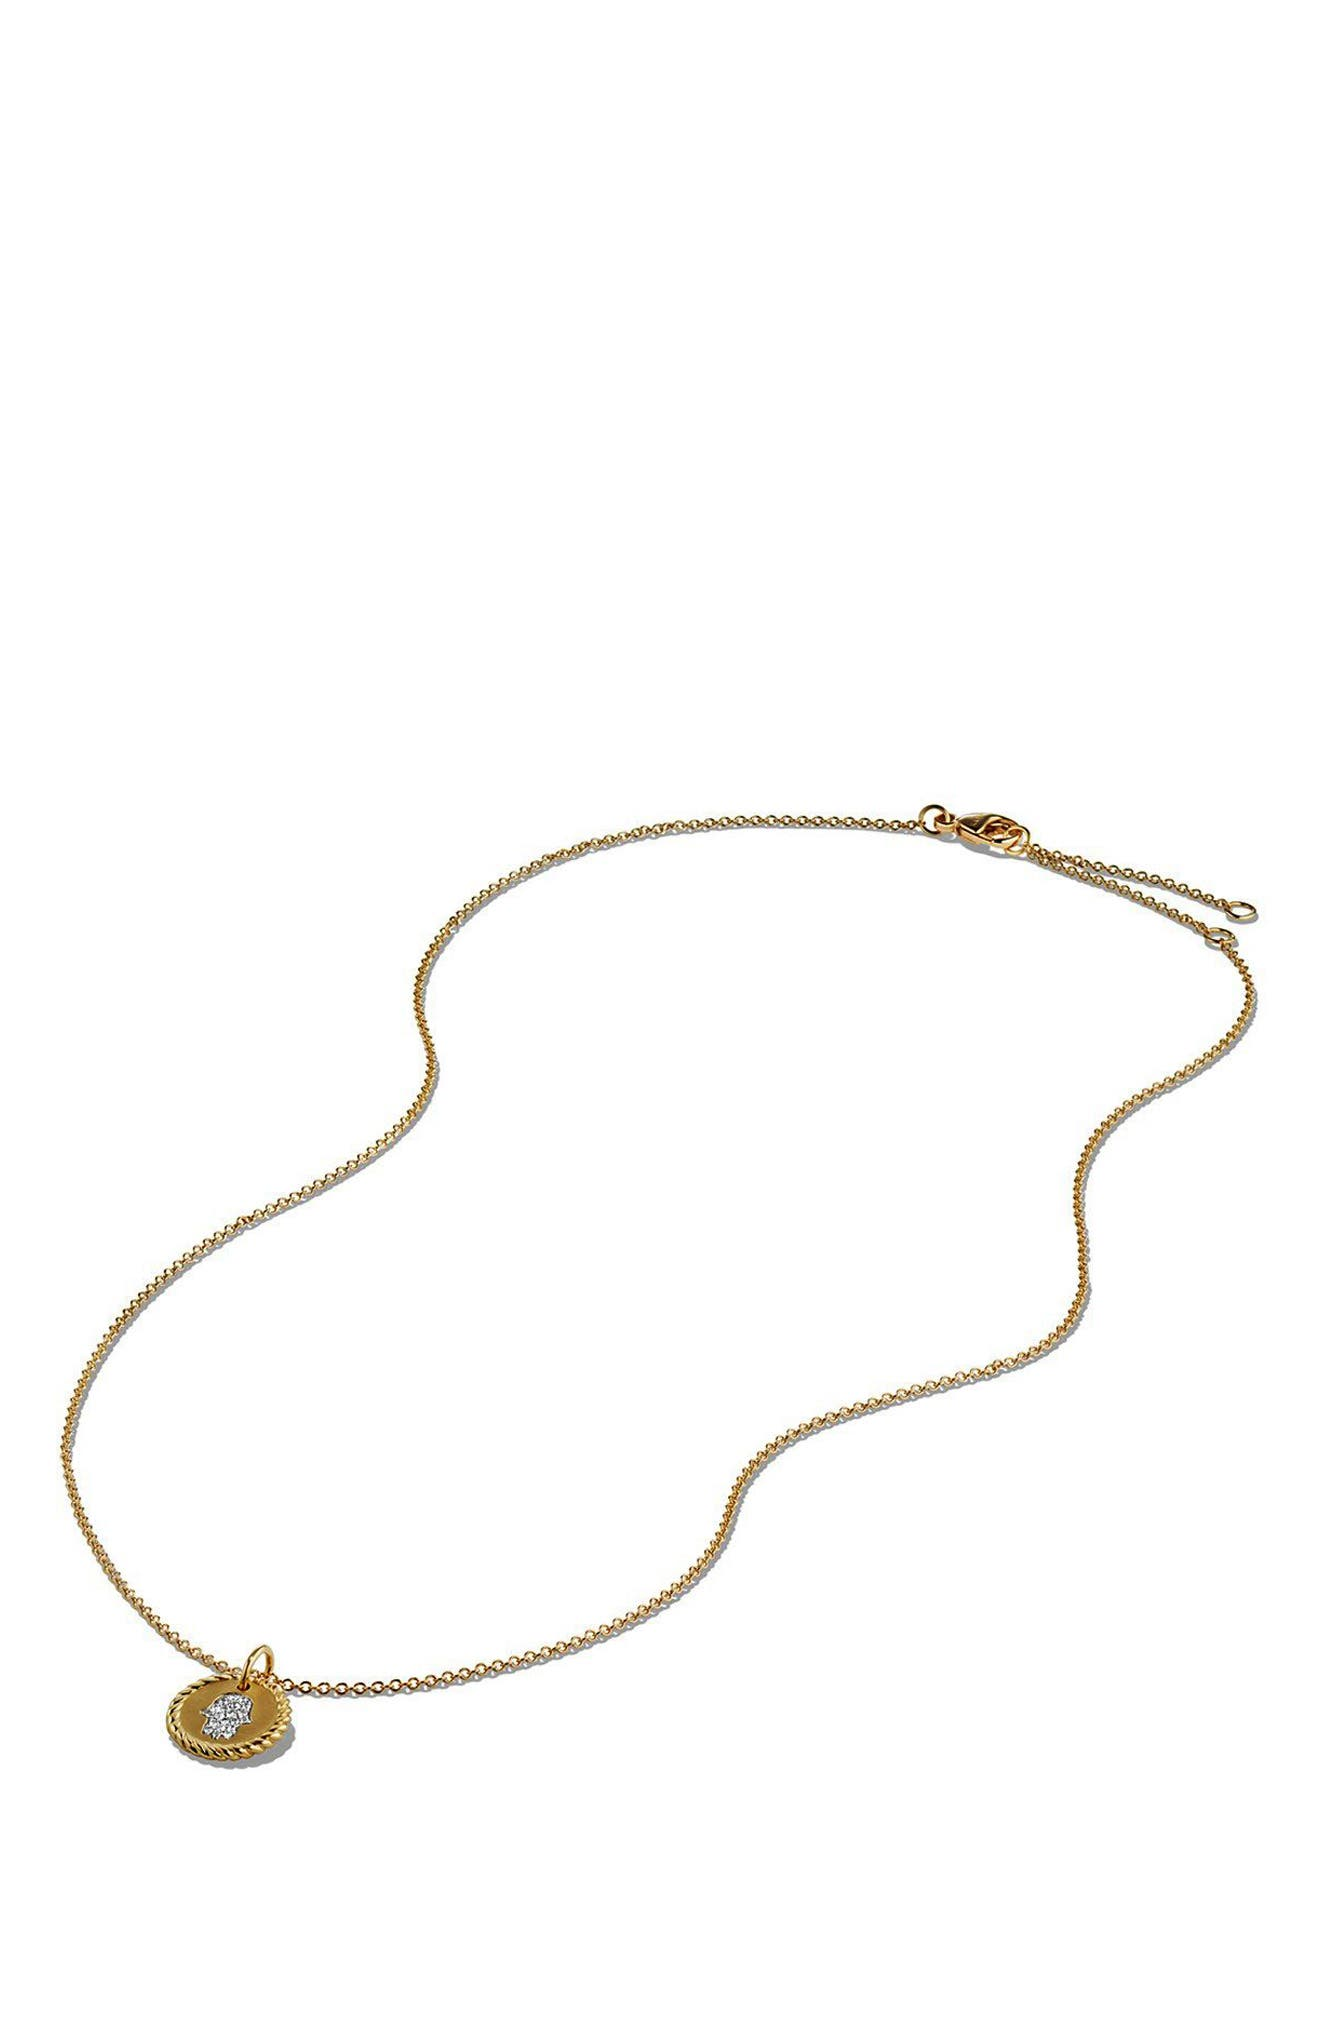 'Cable Collectibles' Pavé Charm with Diamonds in Gold,                             Alternate thumbnail 6, color,                             GOLD